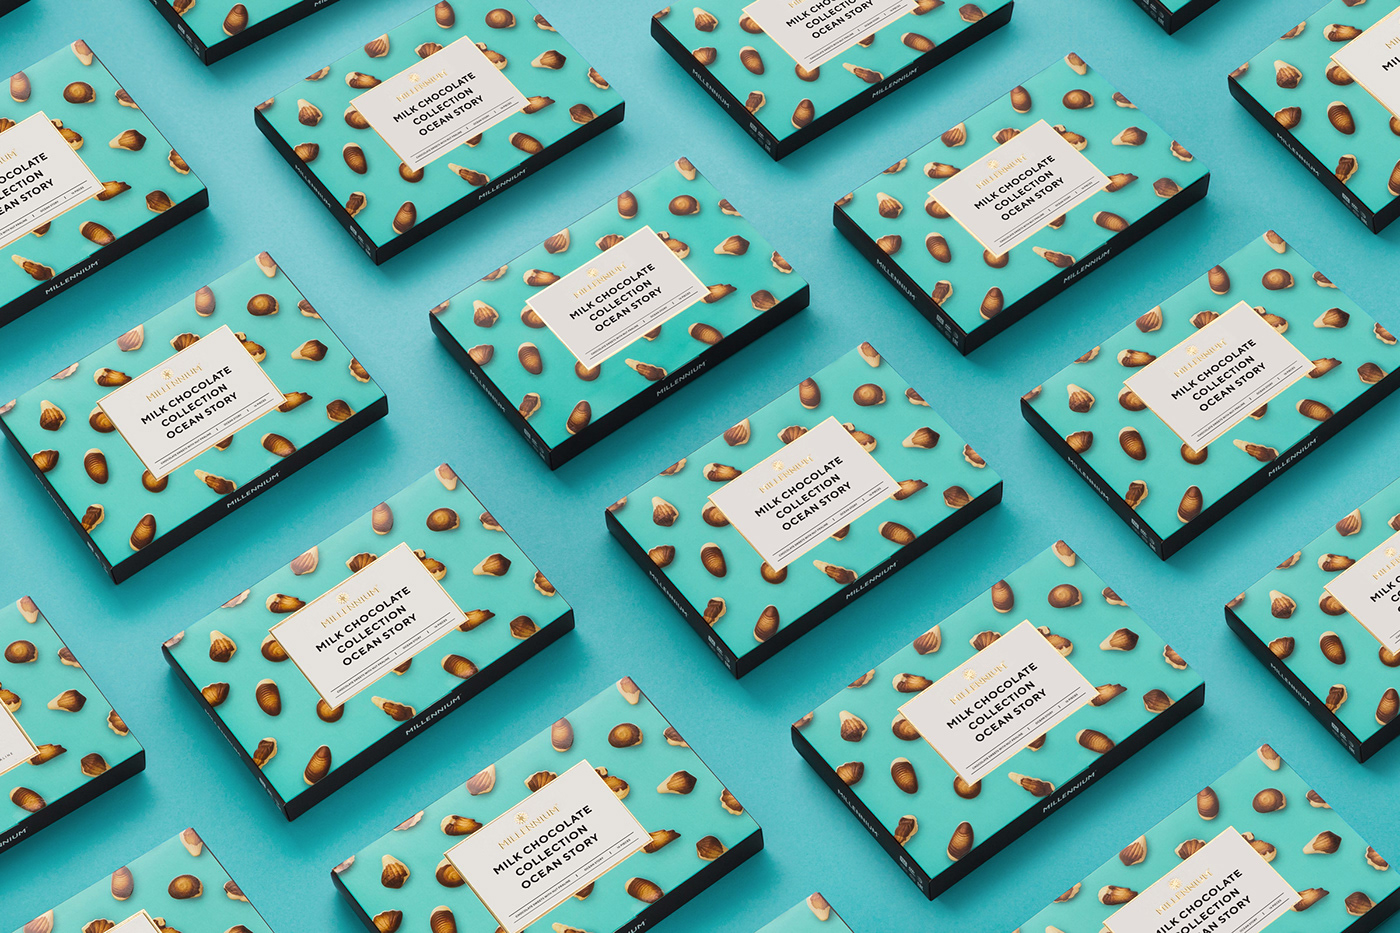 chocolate chocolates package Packaging Sweets Food  dessert redesign